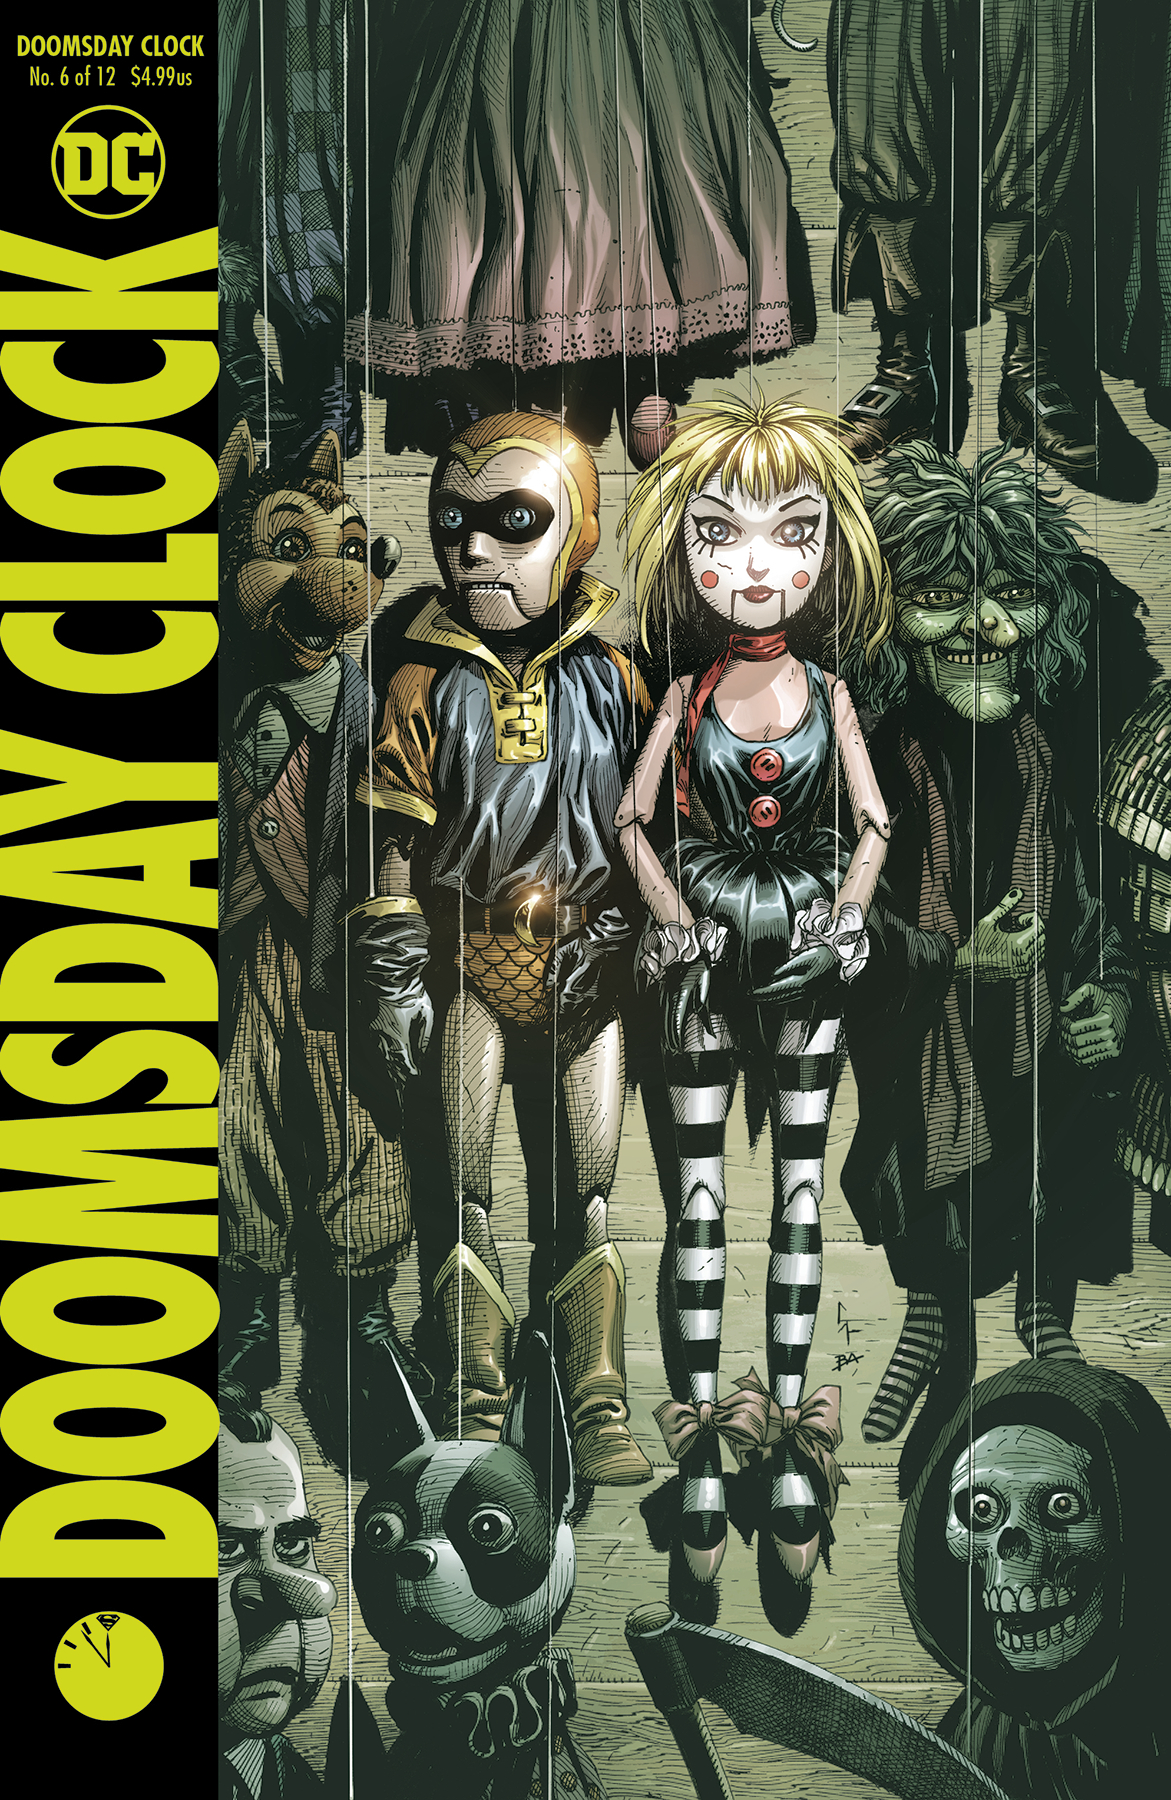 DOOMSDAY CLOCK #6 (OF 12)